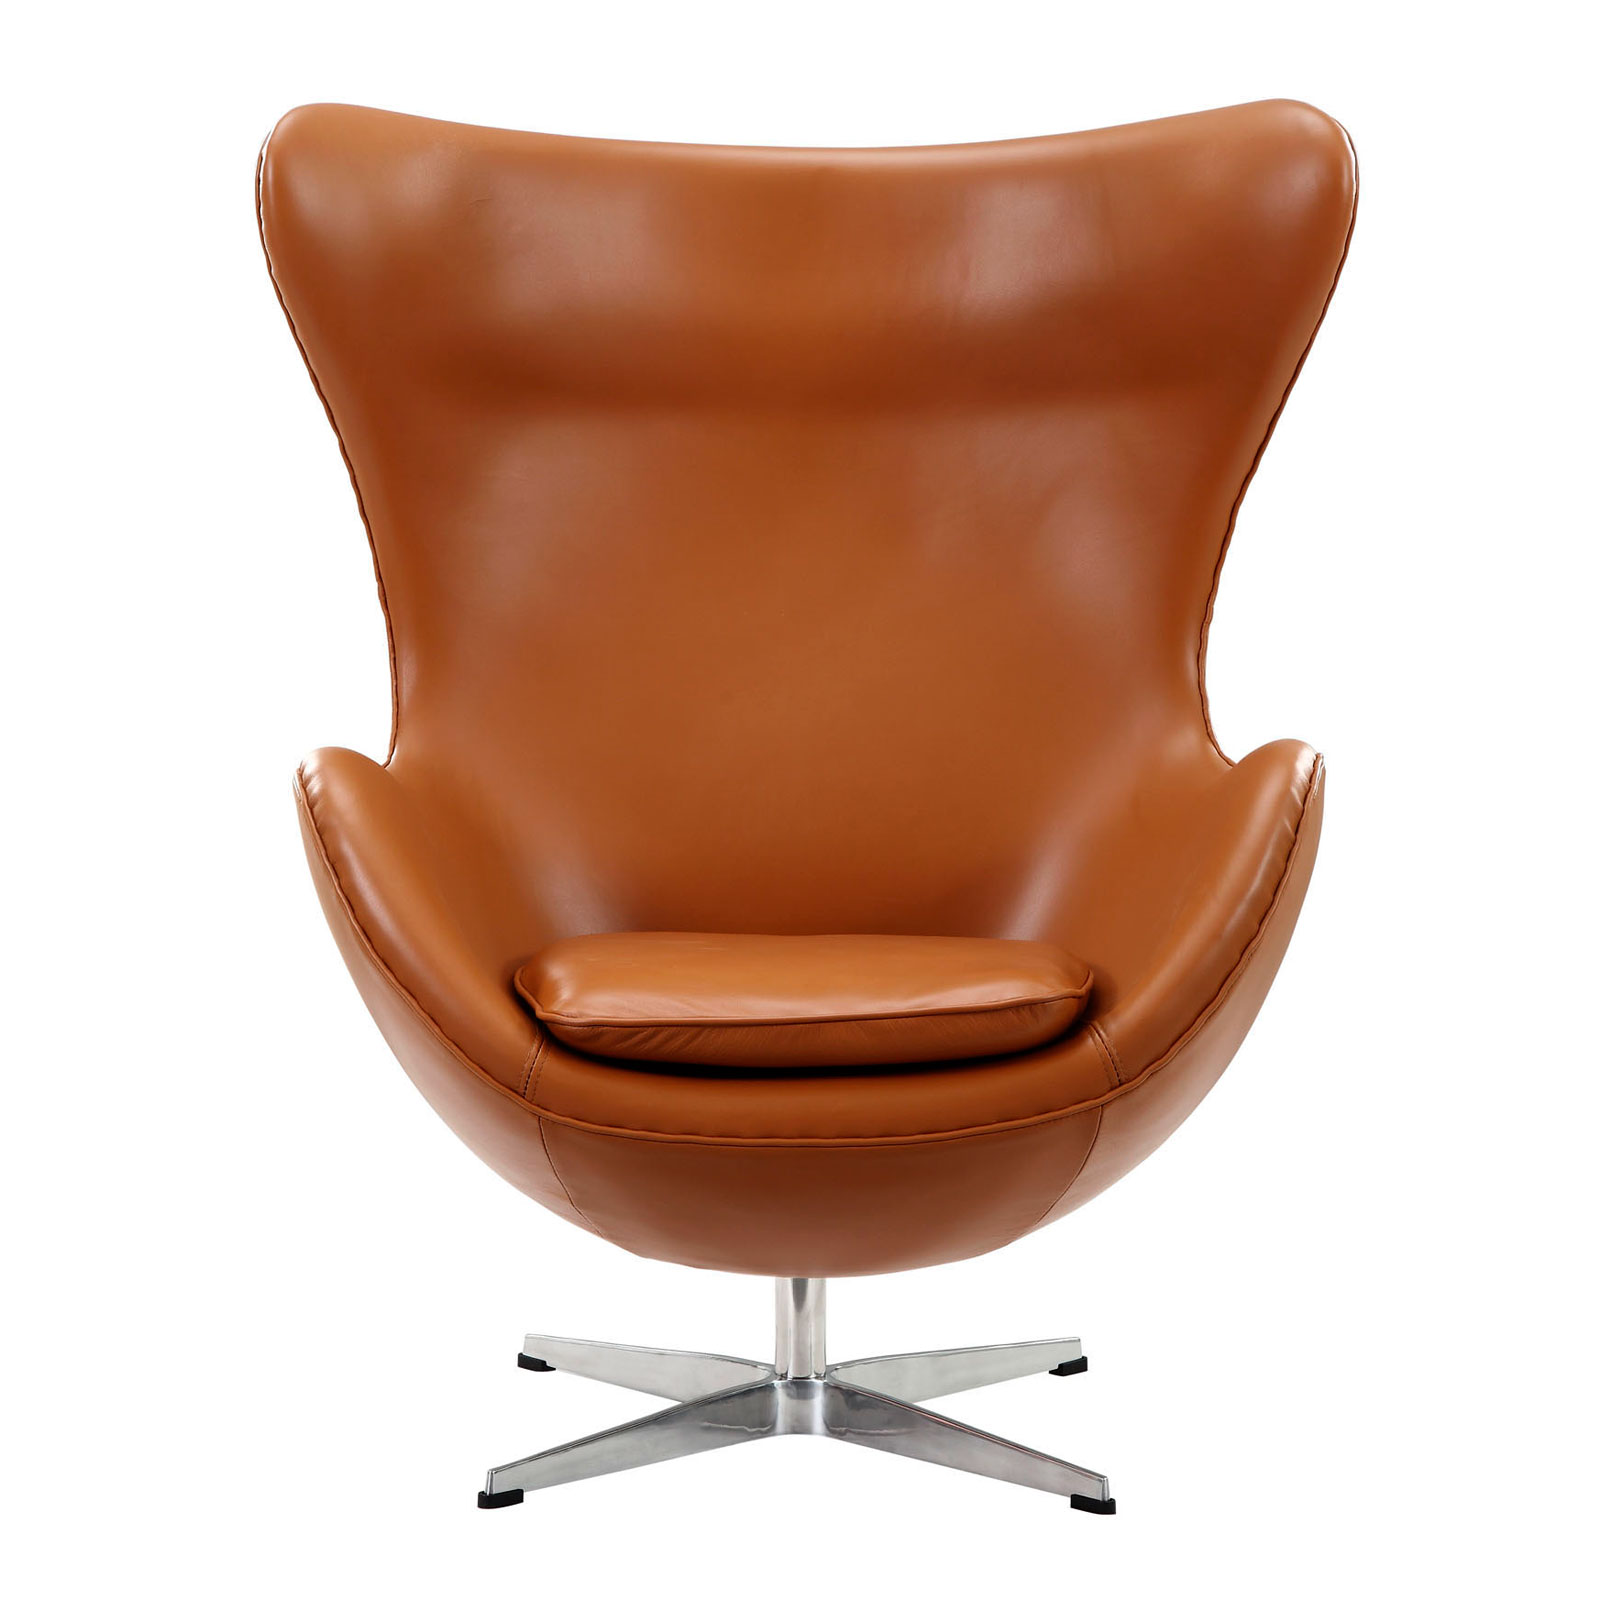 Replica Arne Jacobsen Home Furniture Swivel Egg Chair Of Fritz Hansen With Ottoman